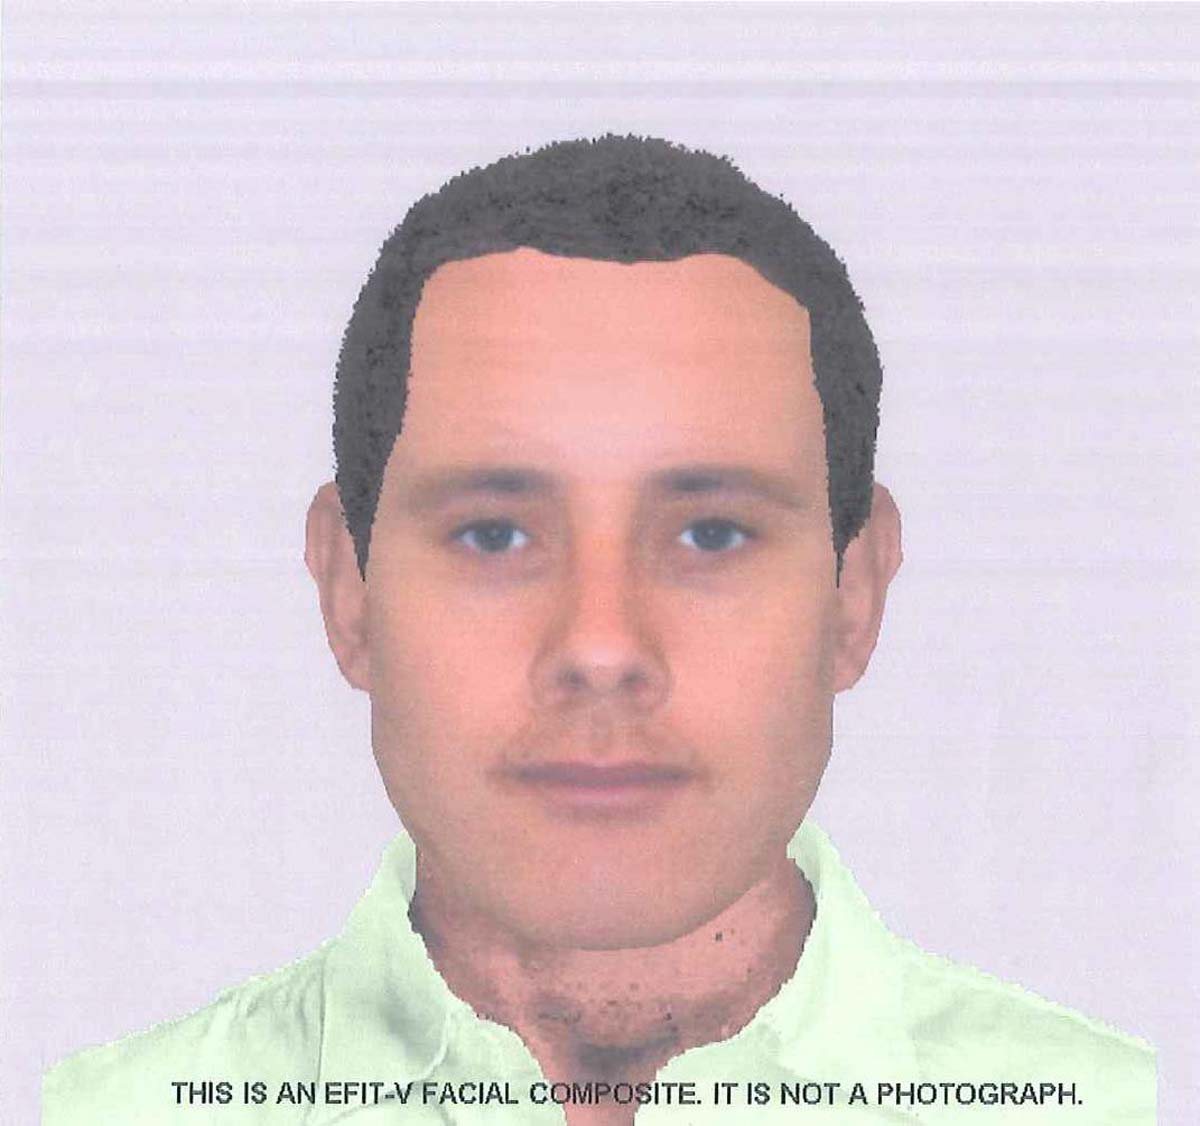 Efit released after reports of man impersonating a police officer